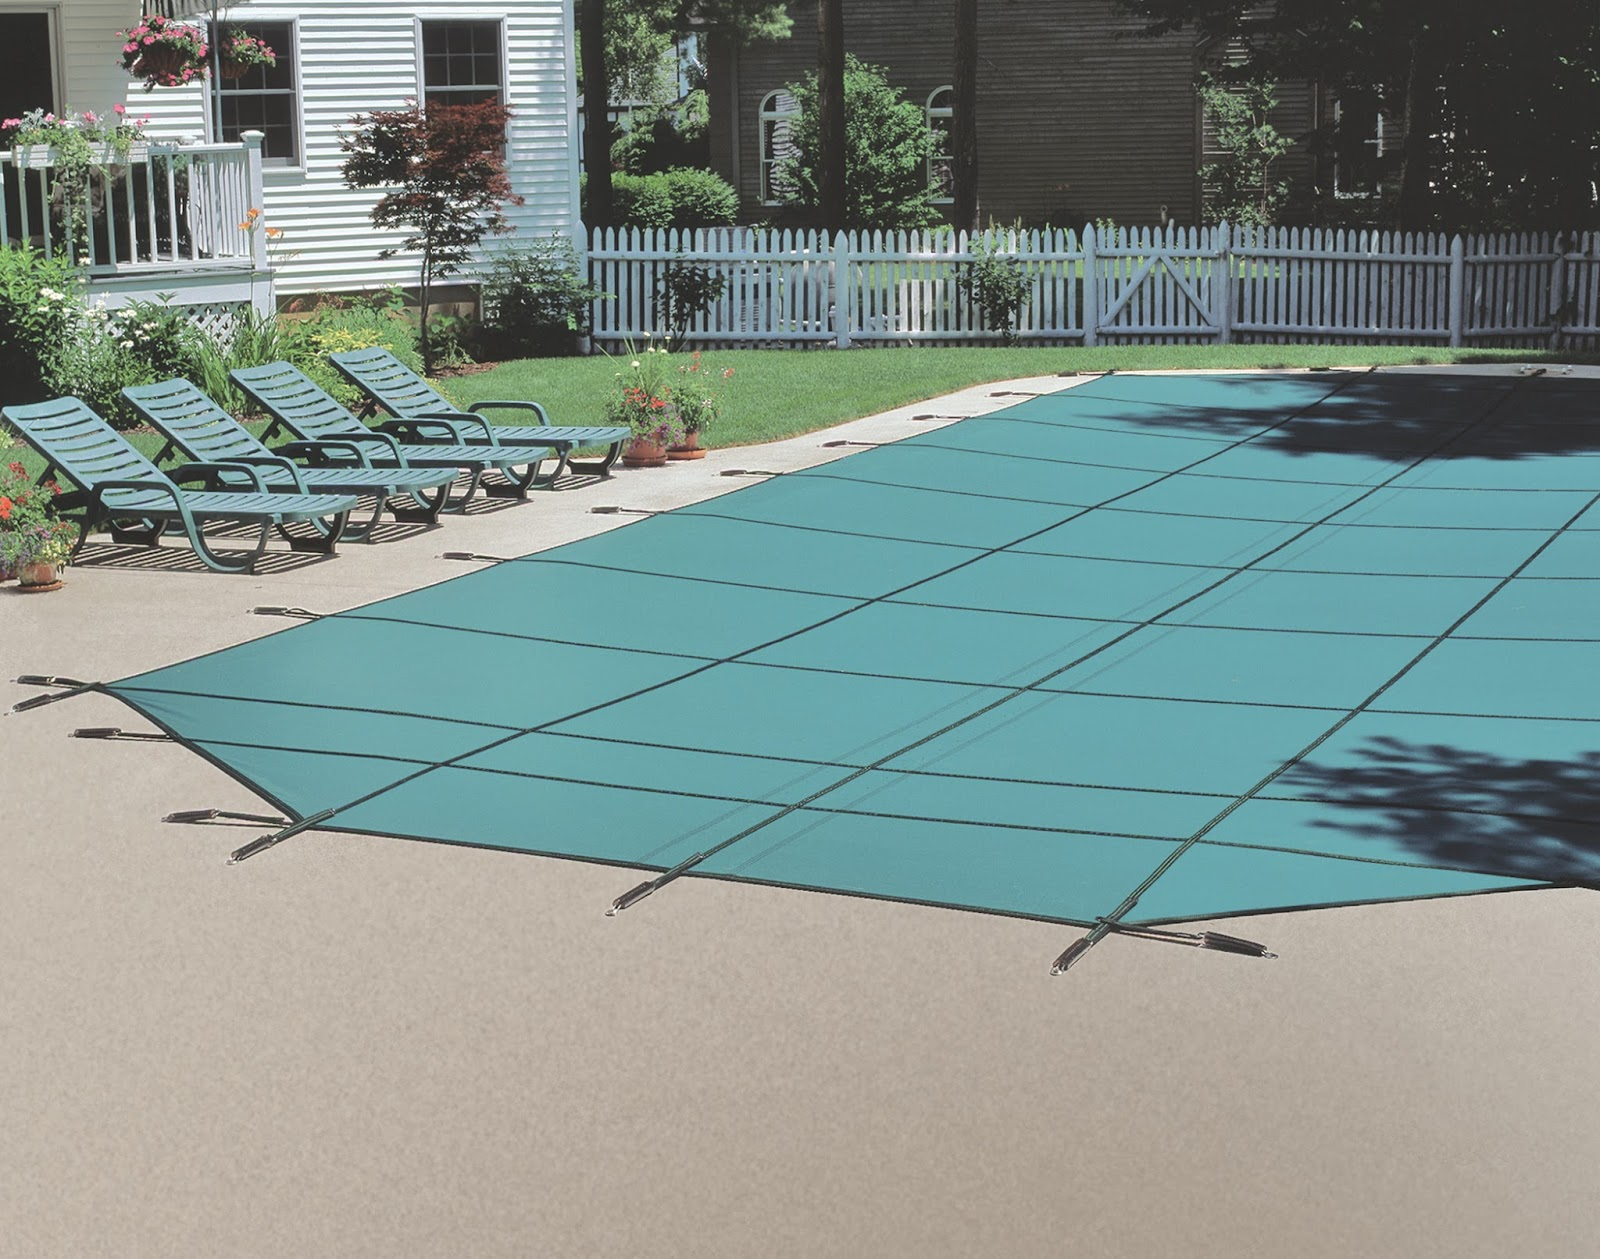 Pool Cover Star Switch Wiring Diagram - Example Electrical Wiring ...